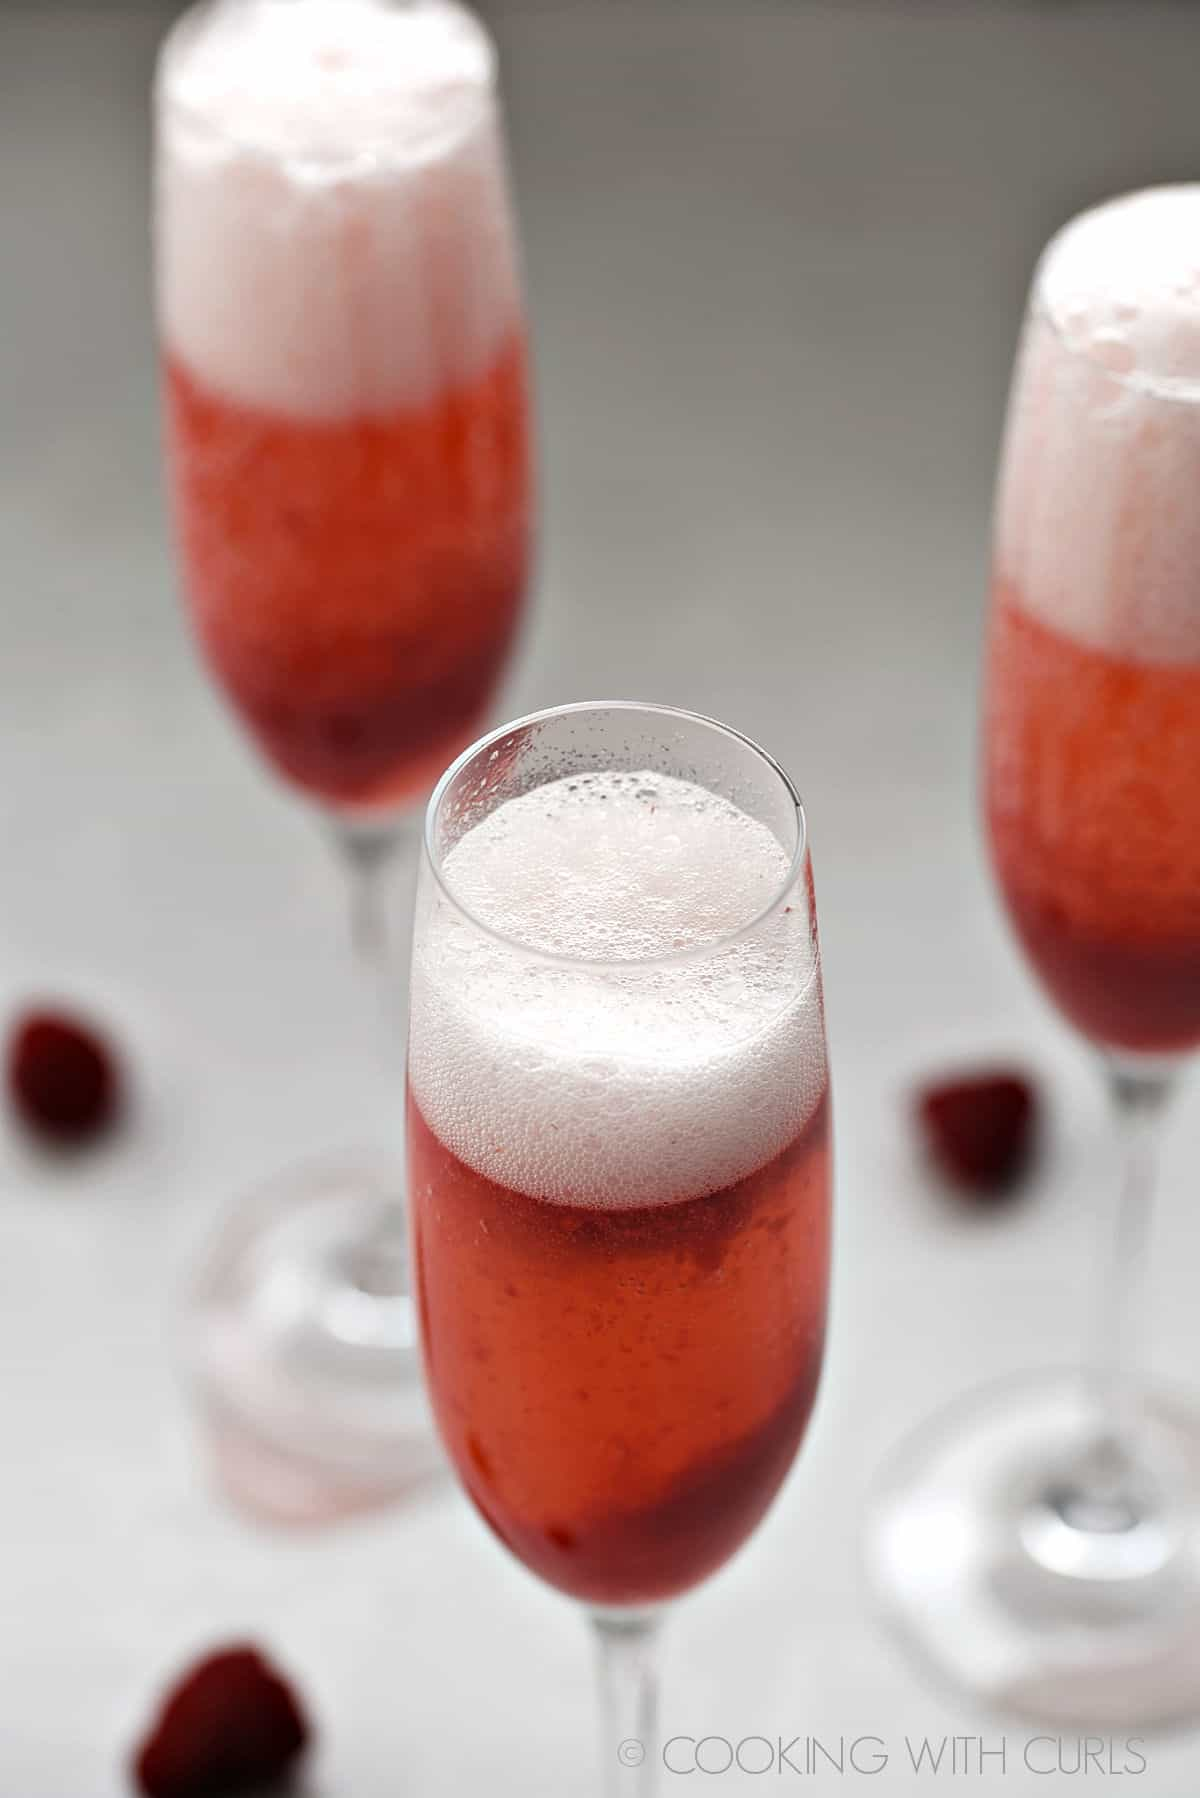 Prosecco added to the raspberry puree in the champagne flutes.